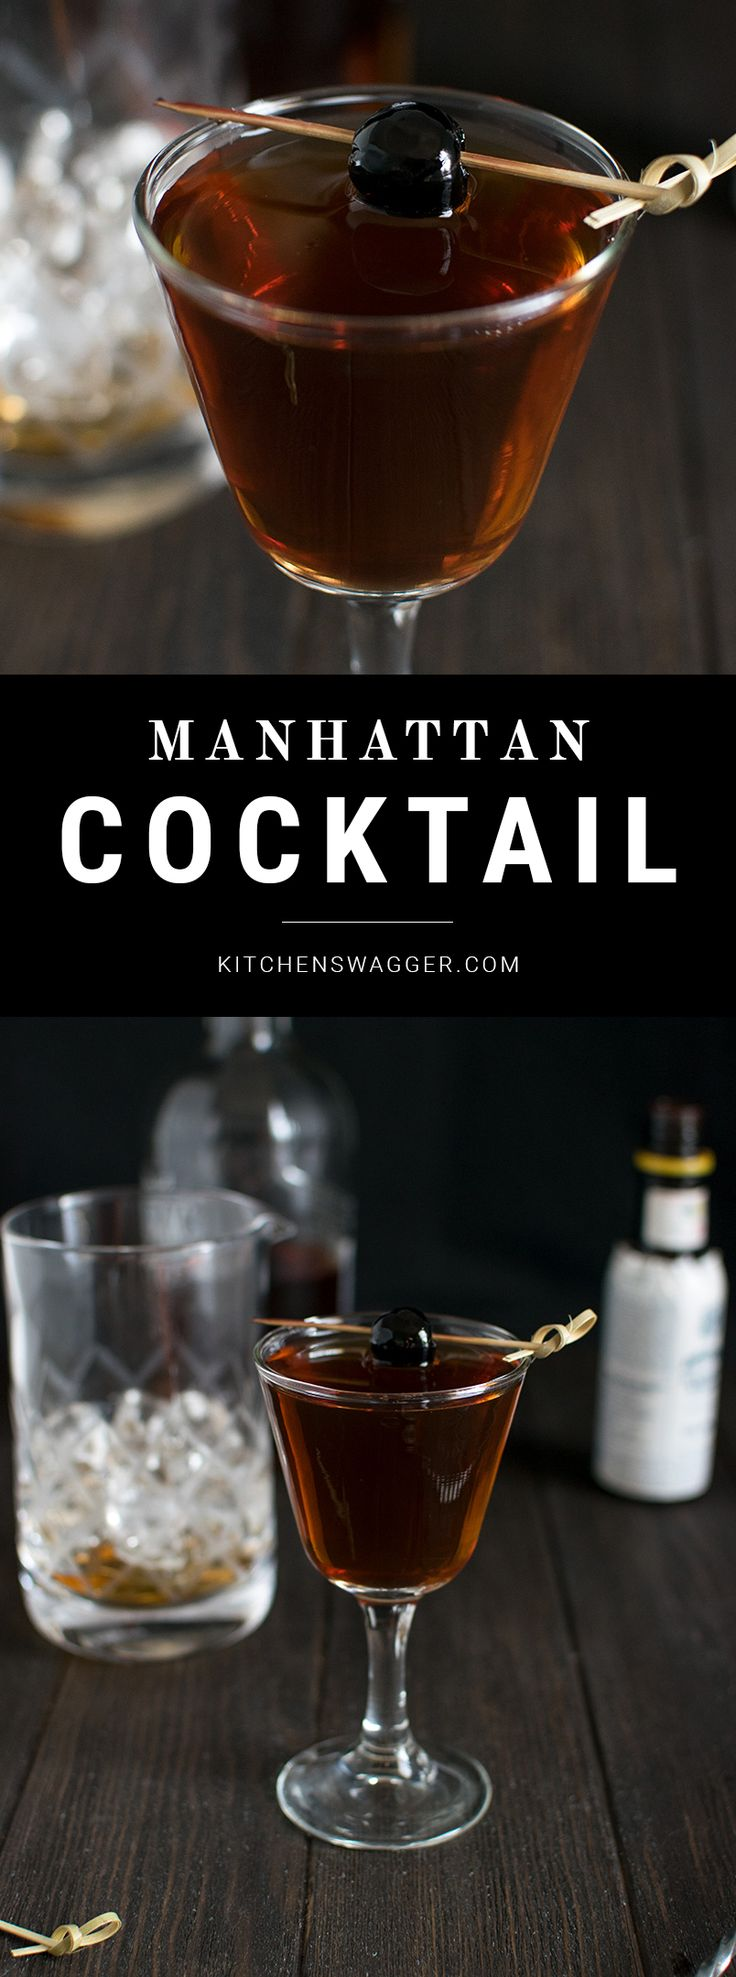 red moon over manhattan cocktail - photo #26